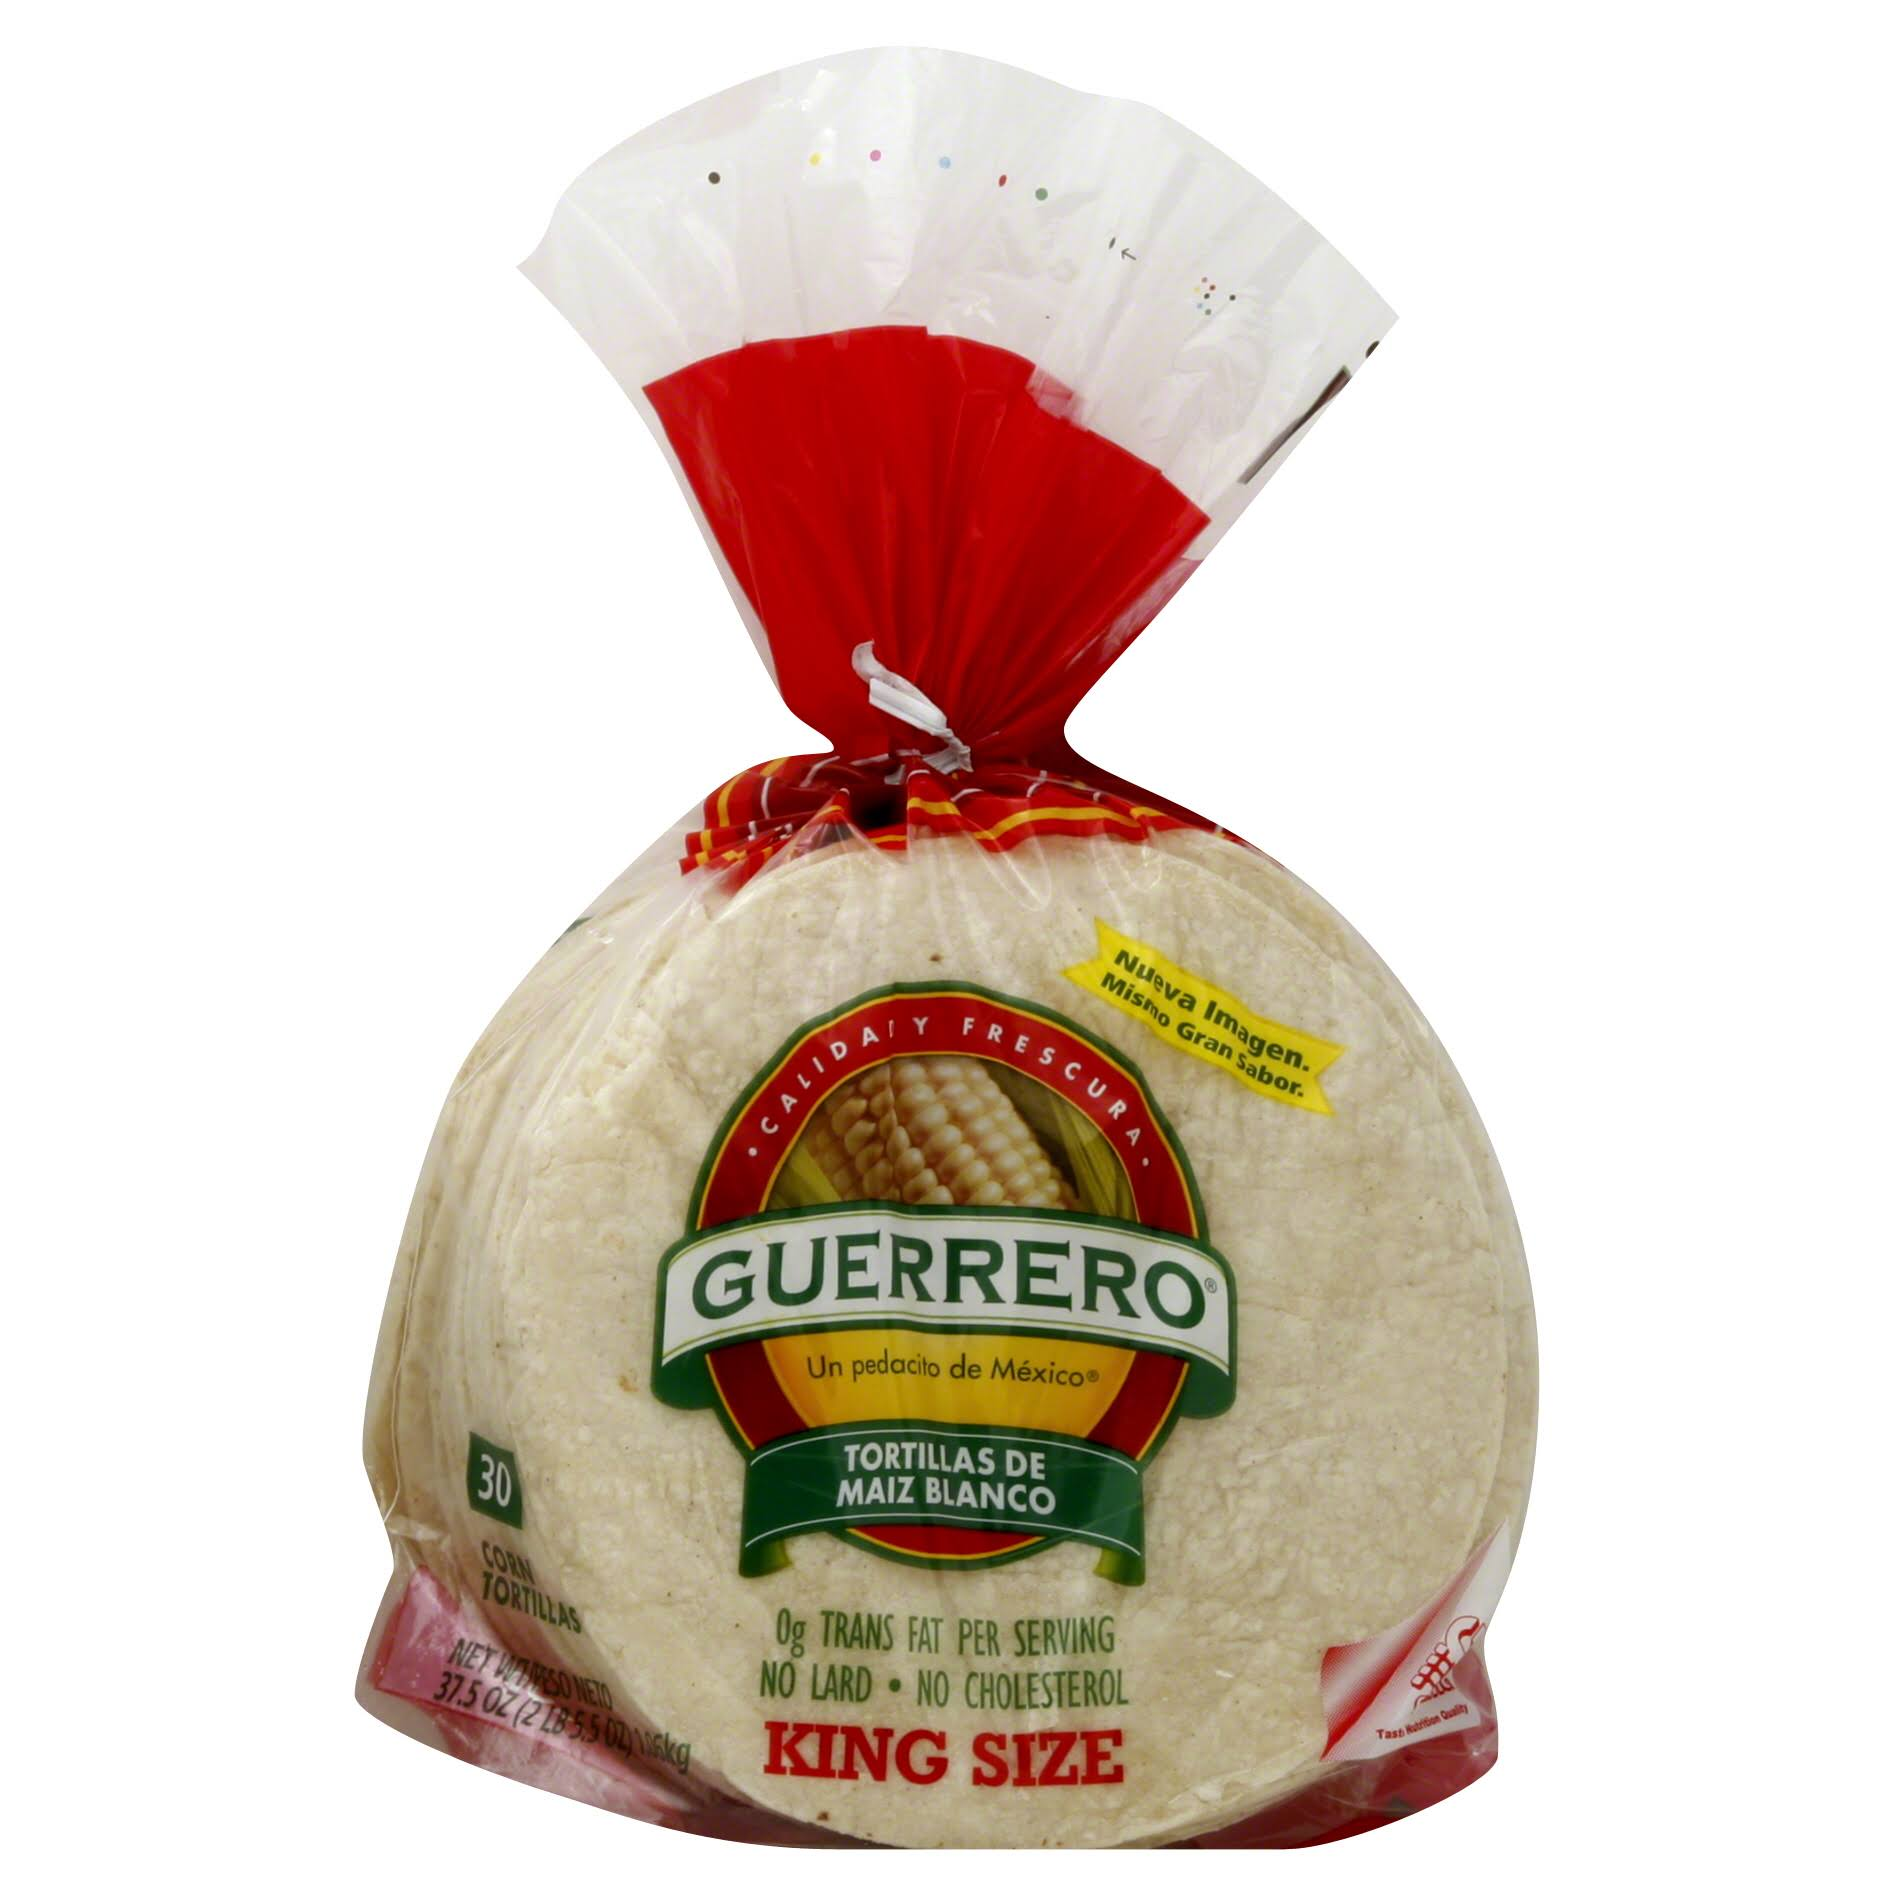 Guerrero Corn King Size De Maiz Blanco Tortillas - 30ct